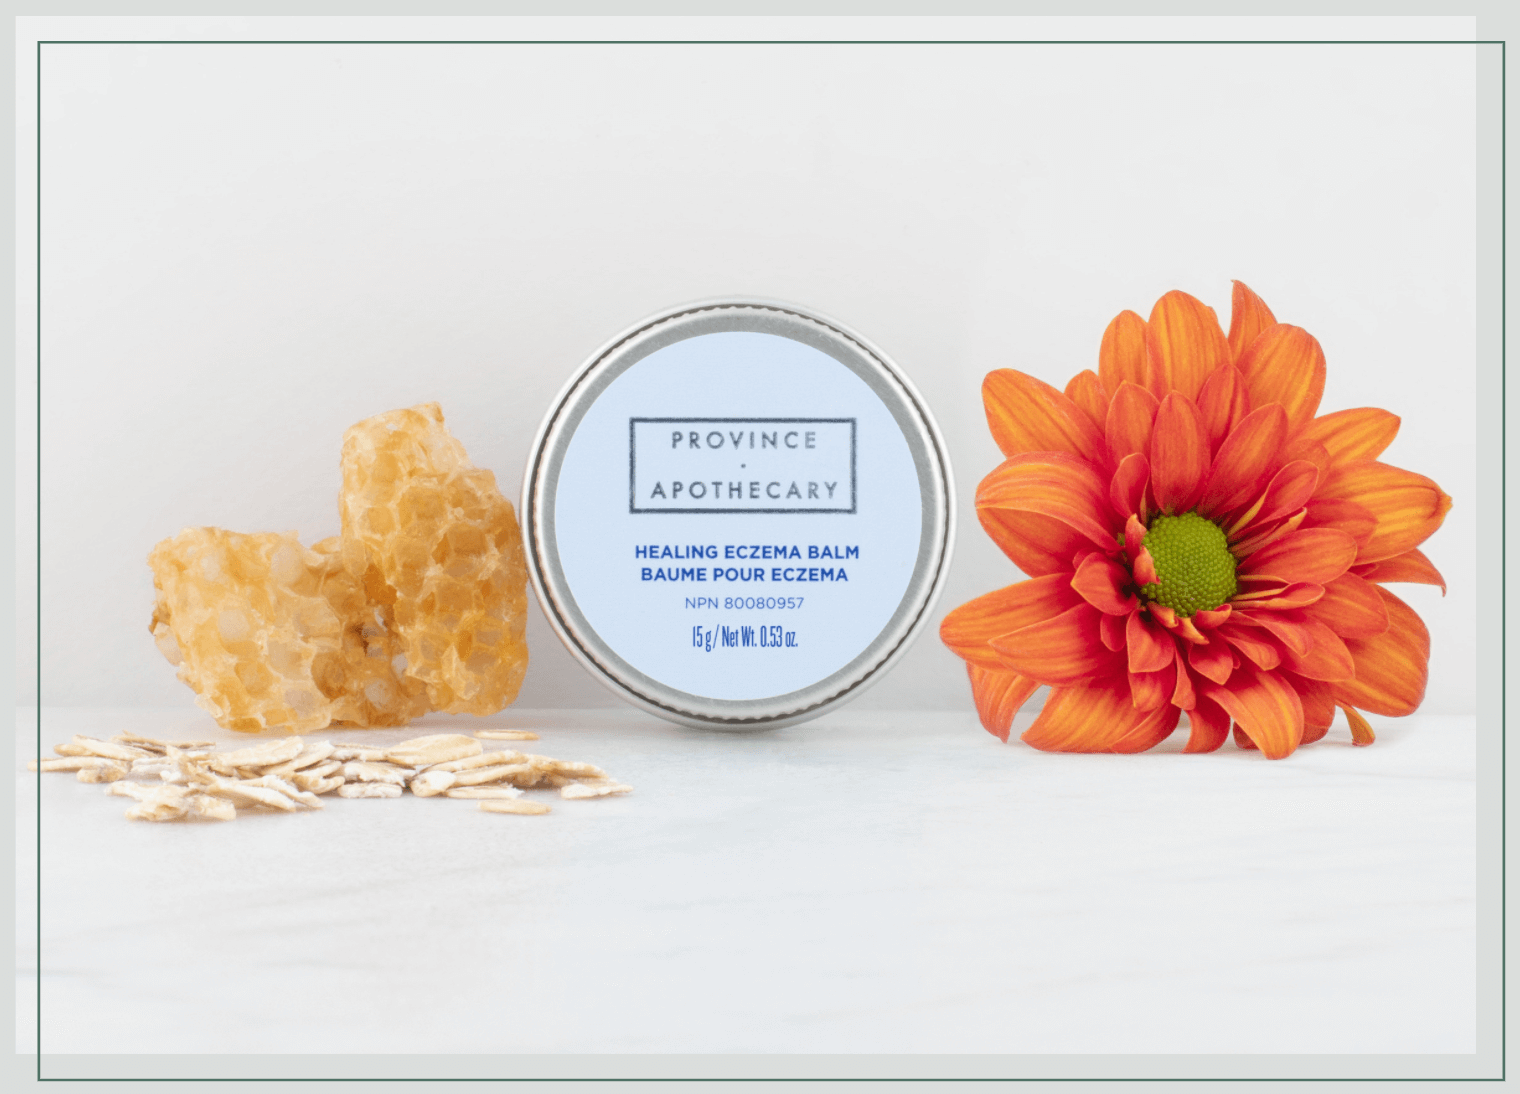 The-Healing-Eczema-Balm-On-Display-Neck-To-Honeycomb-And-Oats